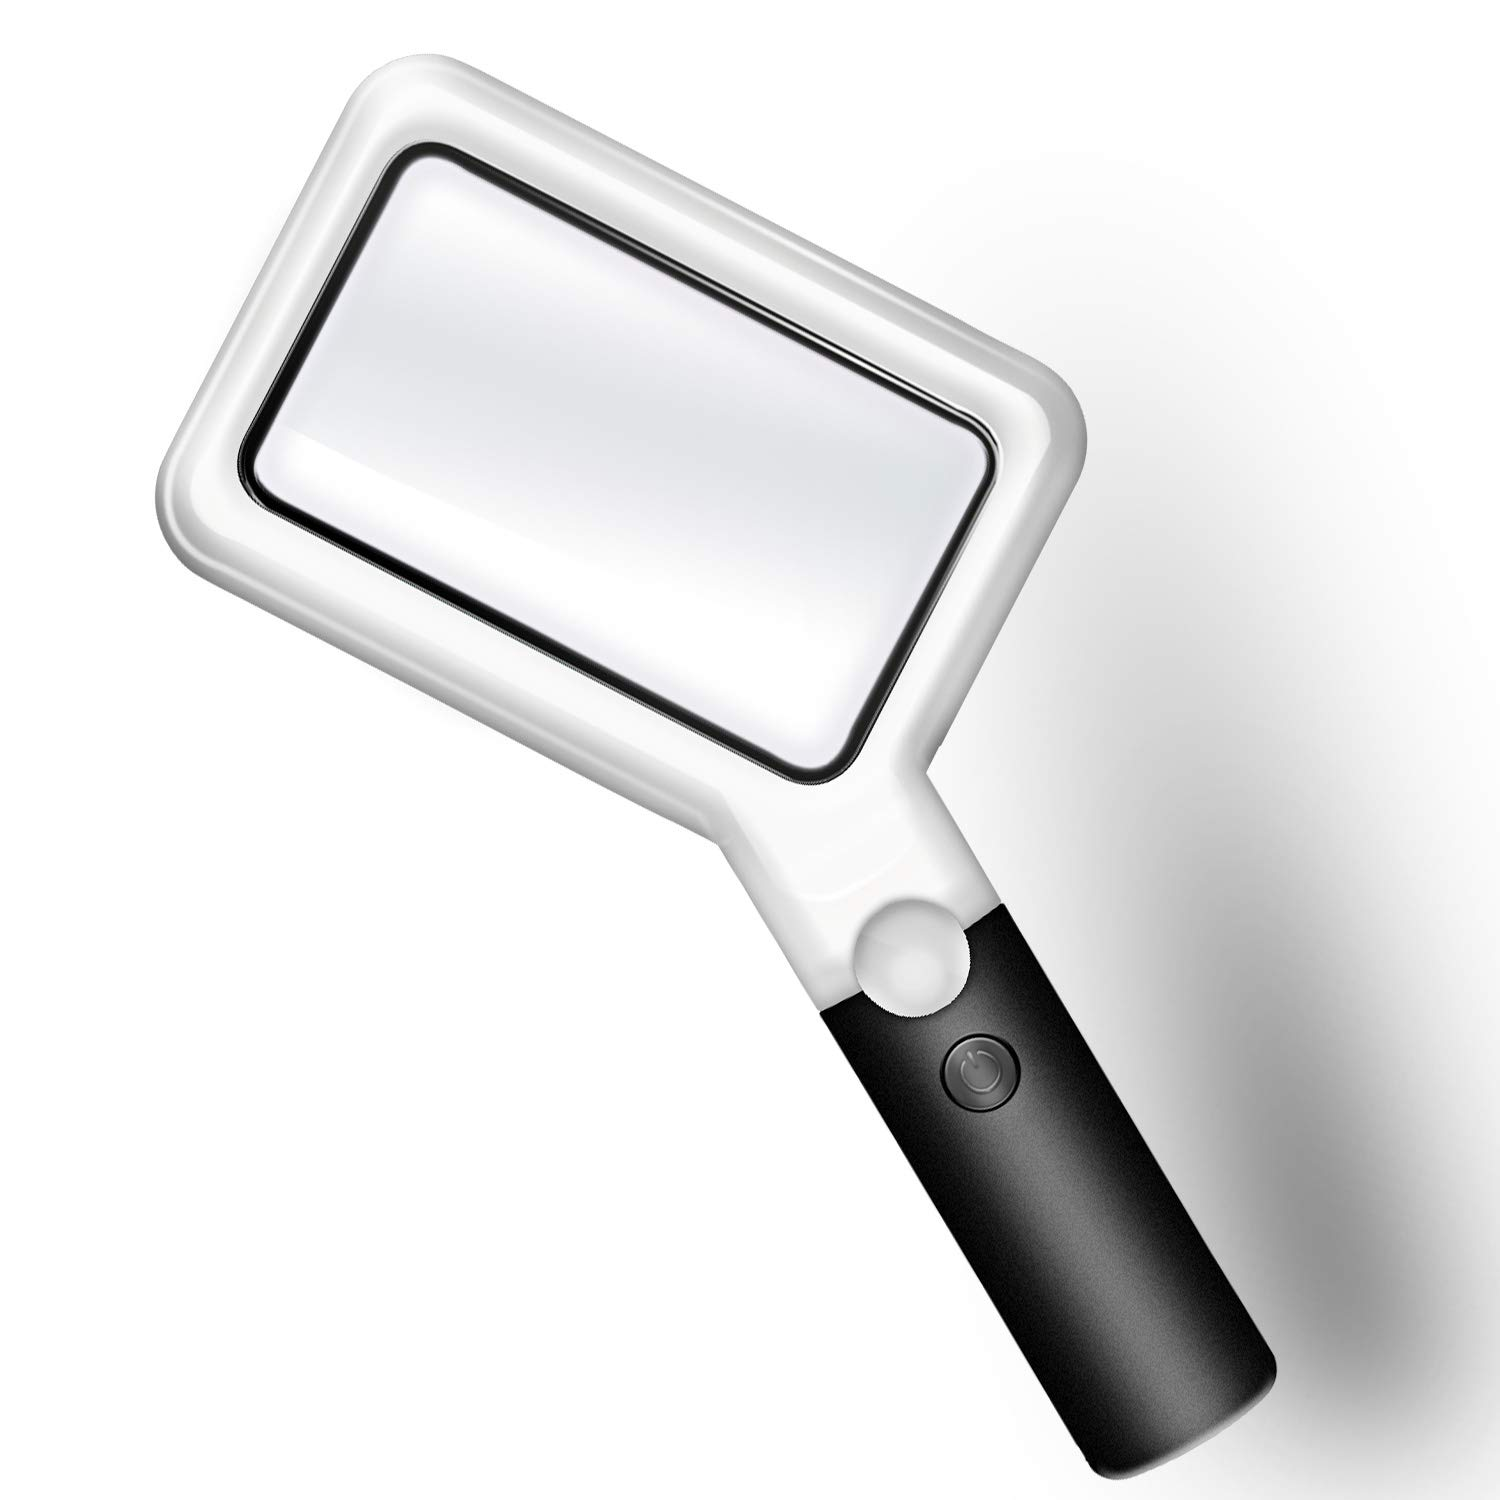 Magnifying Glass with Light, 2X 20X Handheld Magnifying Glass, YCTEC Magnifier with Light, Large Rectangular Magnifying Lens, LED Lighted Magnifying Glass for Reading, Seniors, Low Vision, Hobbyists